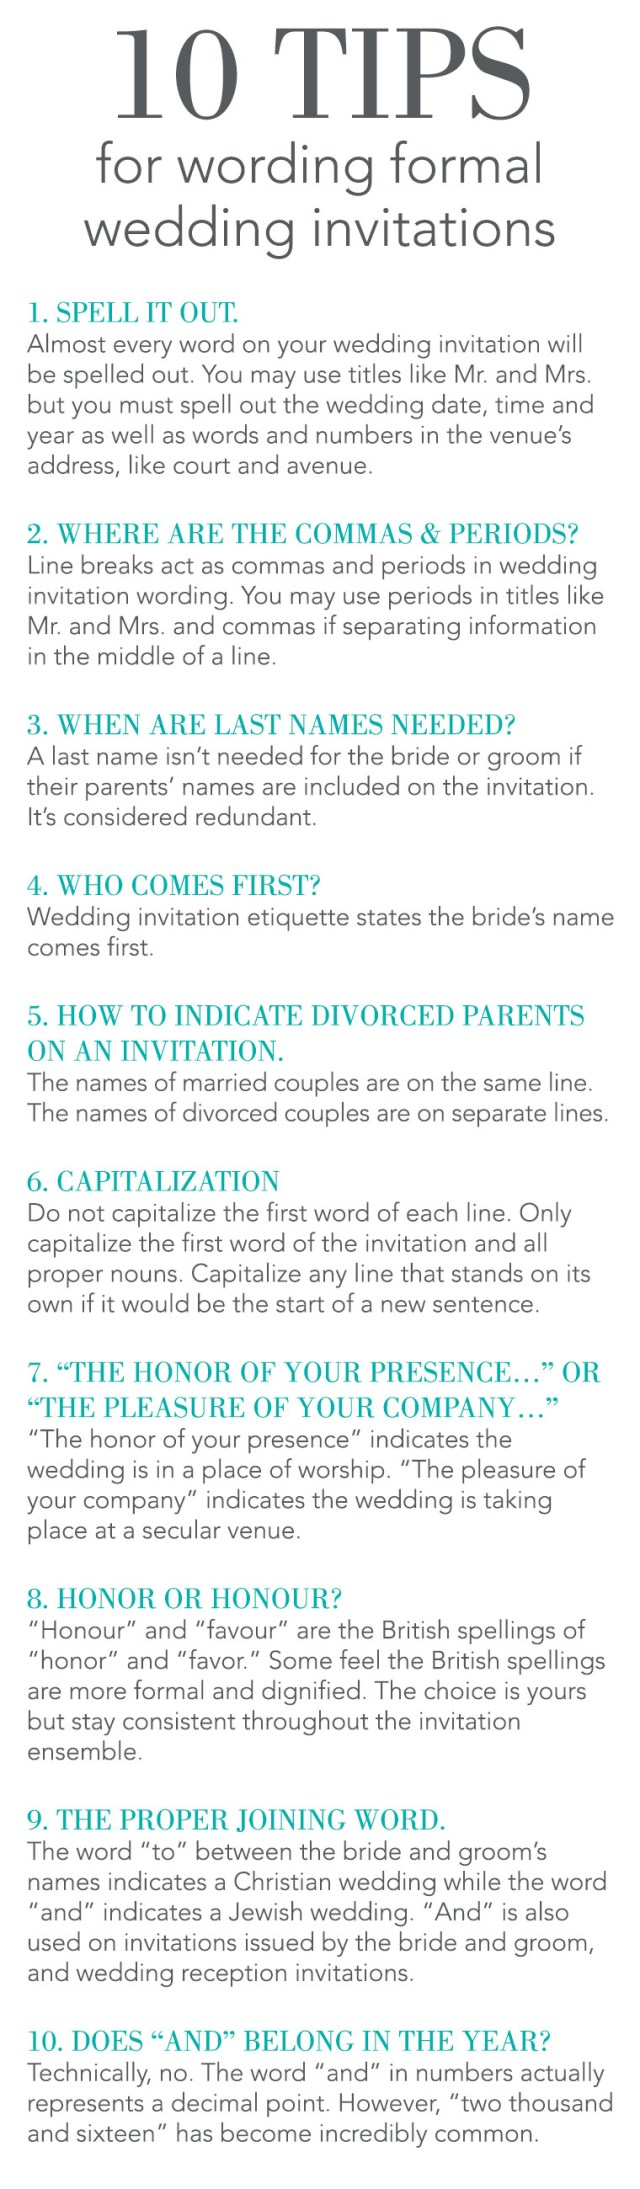 Wedding Invitation Wording Etiquette 10 Tips For Wording Formal Wedding Invitations Invitations Dawn